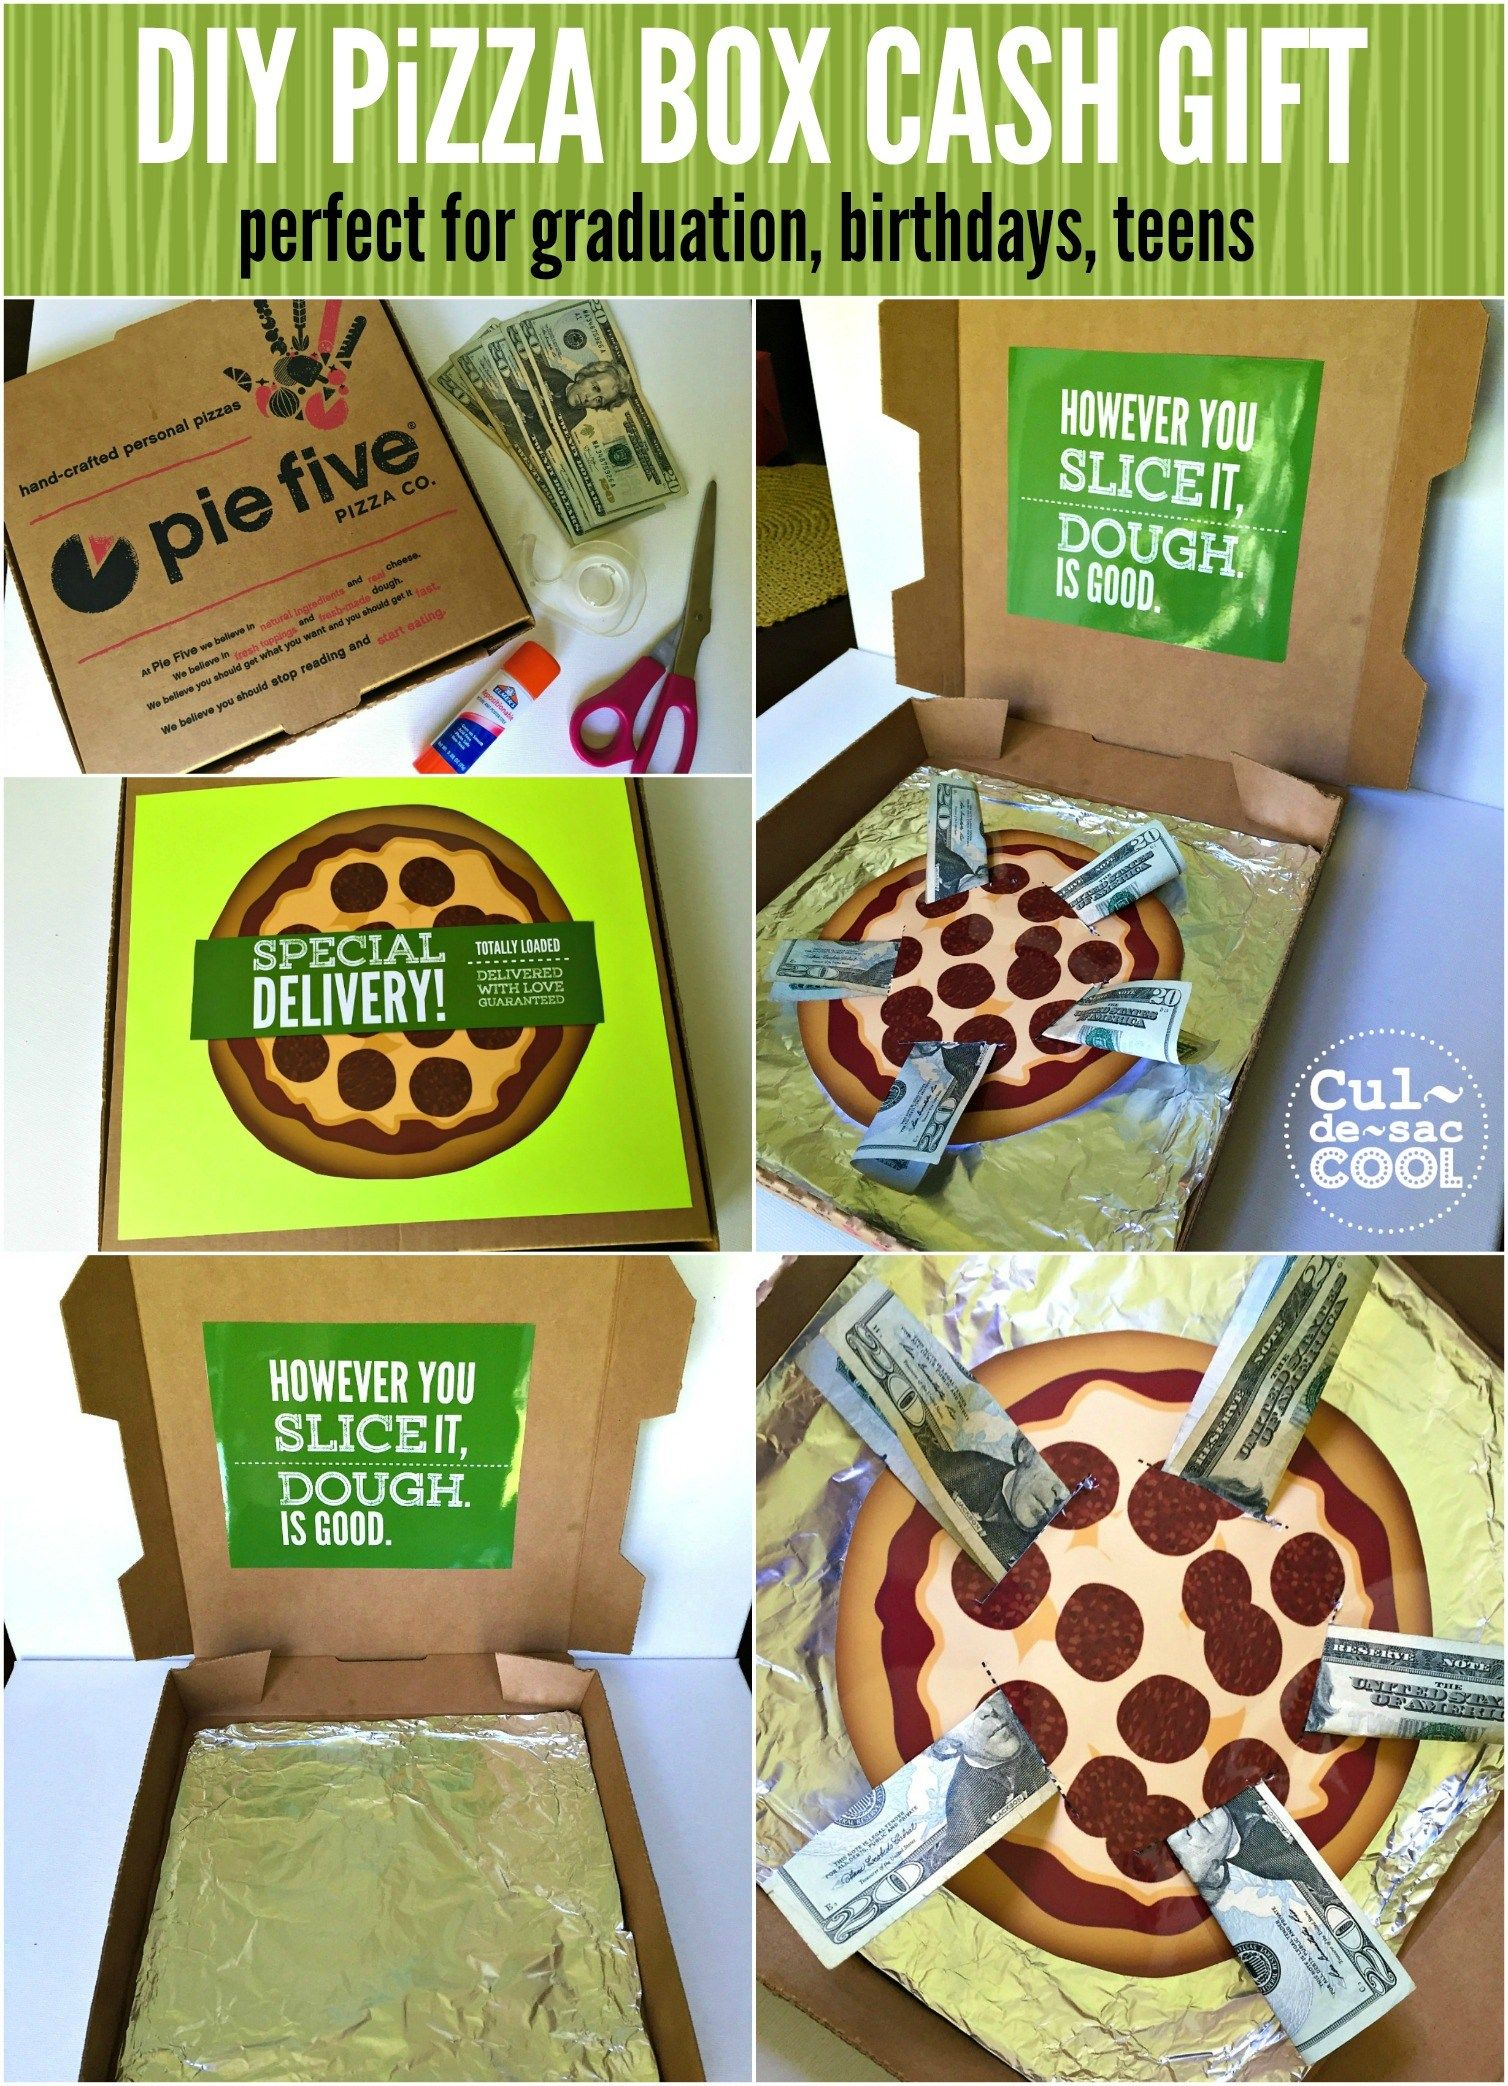 Diy pizza box cash gift with free printables pizza gifts